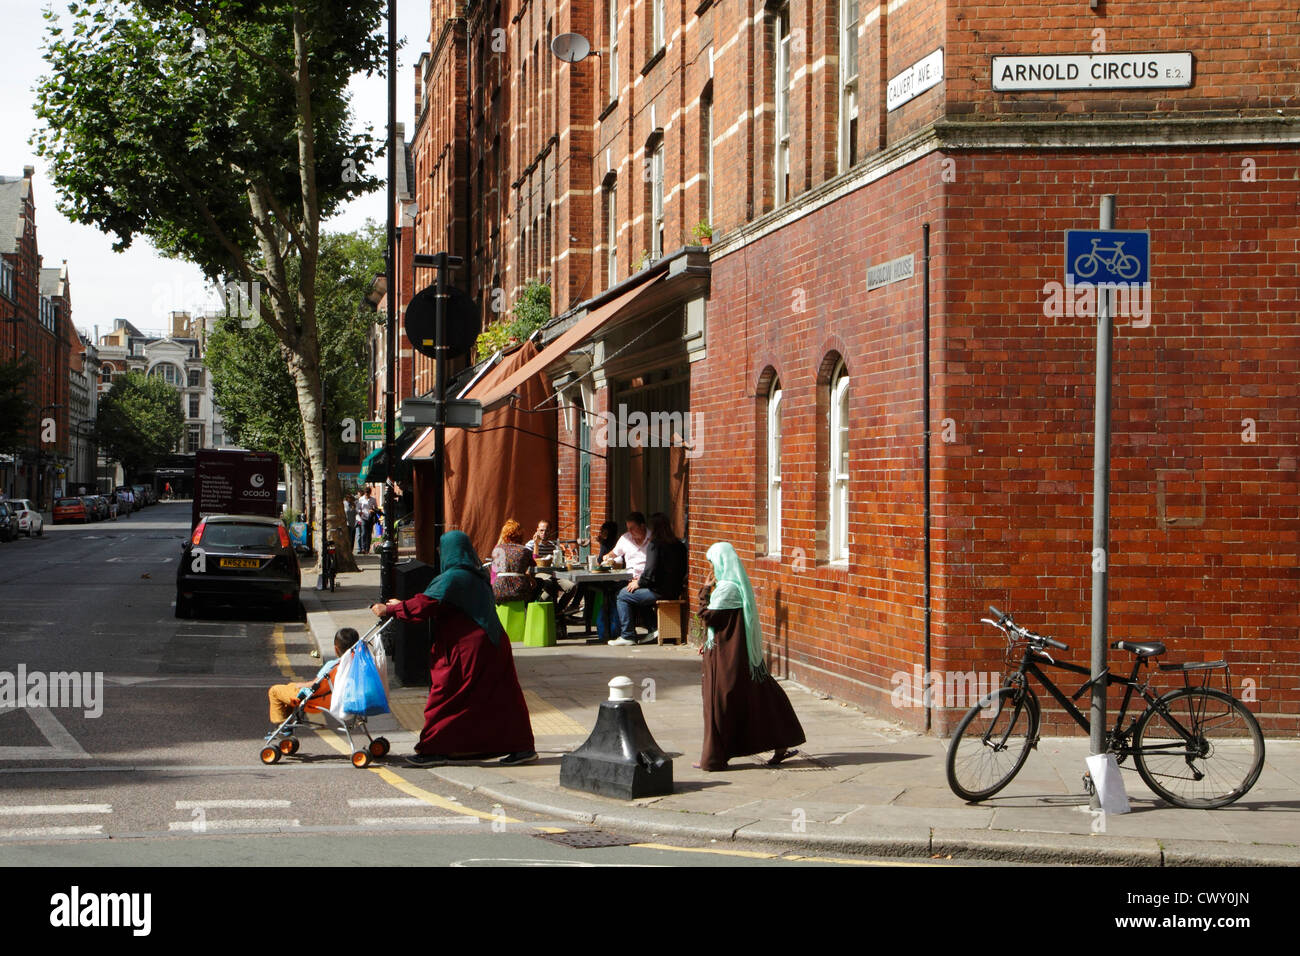 Arnold Circus, Boundary Estate, Bethnal Green, Londres, UK Photo Stock